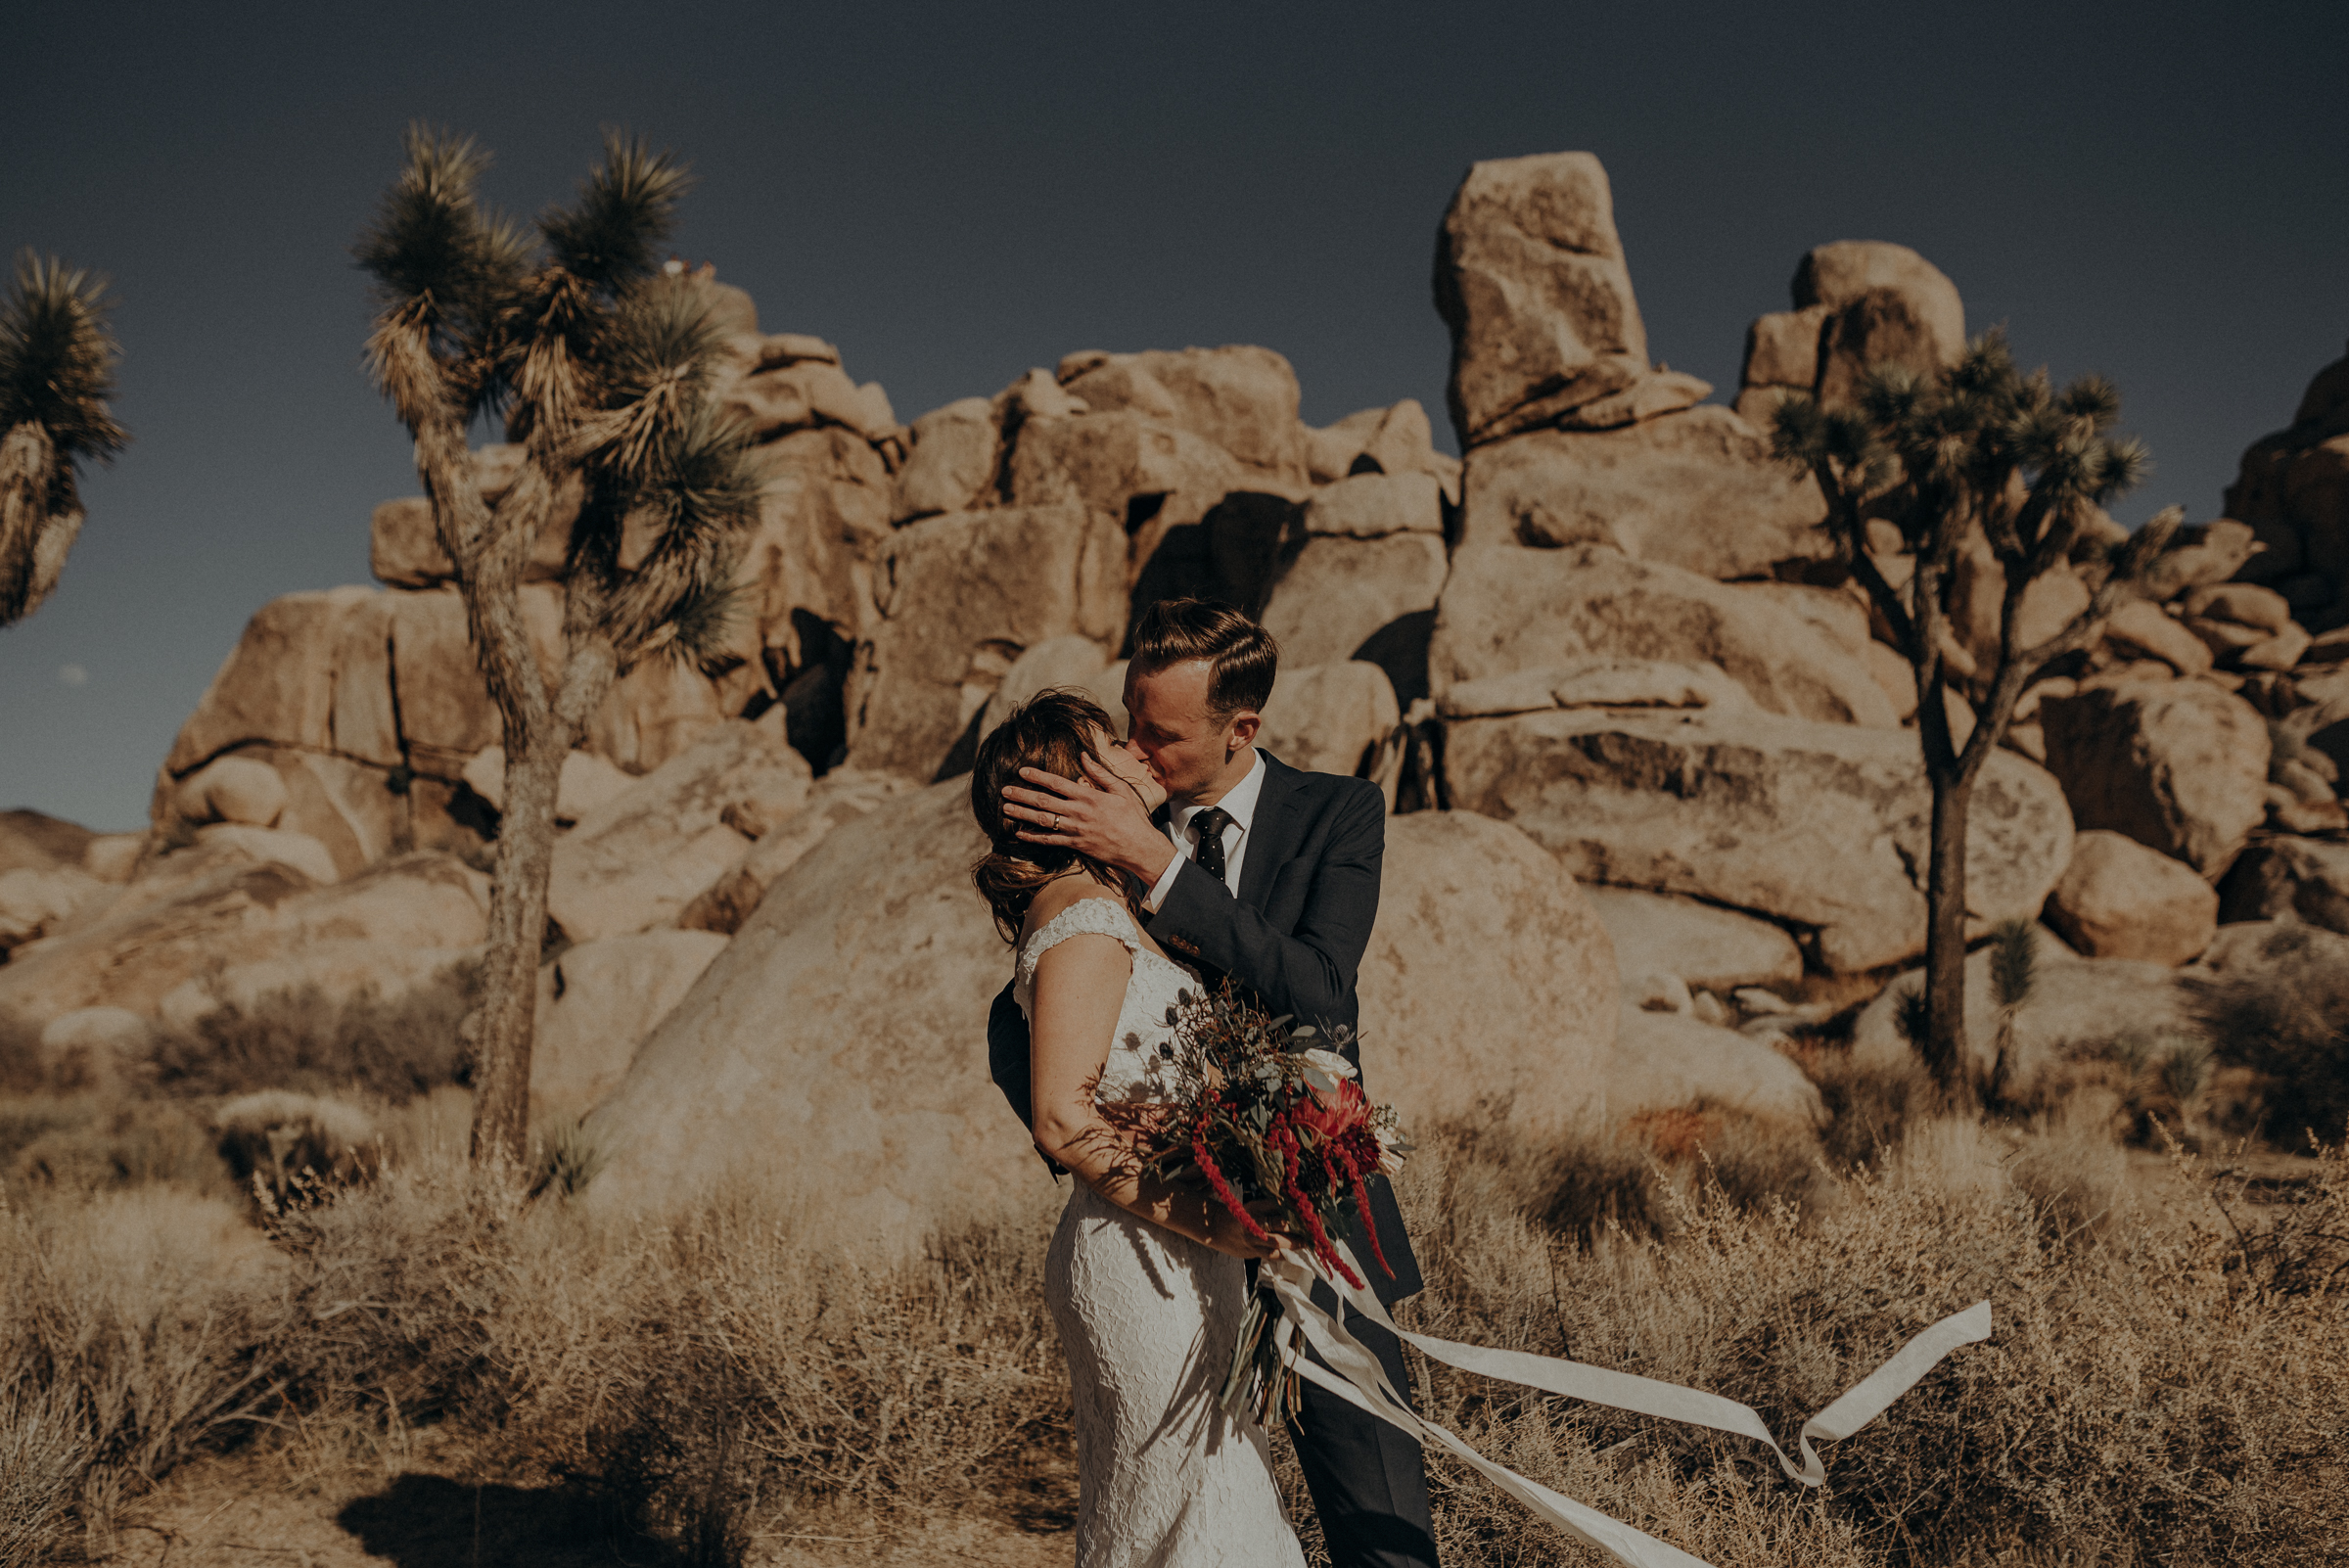 Joshua Tree Elopement - Los Angeles Wedding Photographers - IsaiahAndTaylor.com-038.jpg